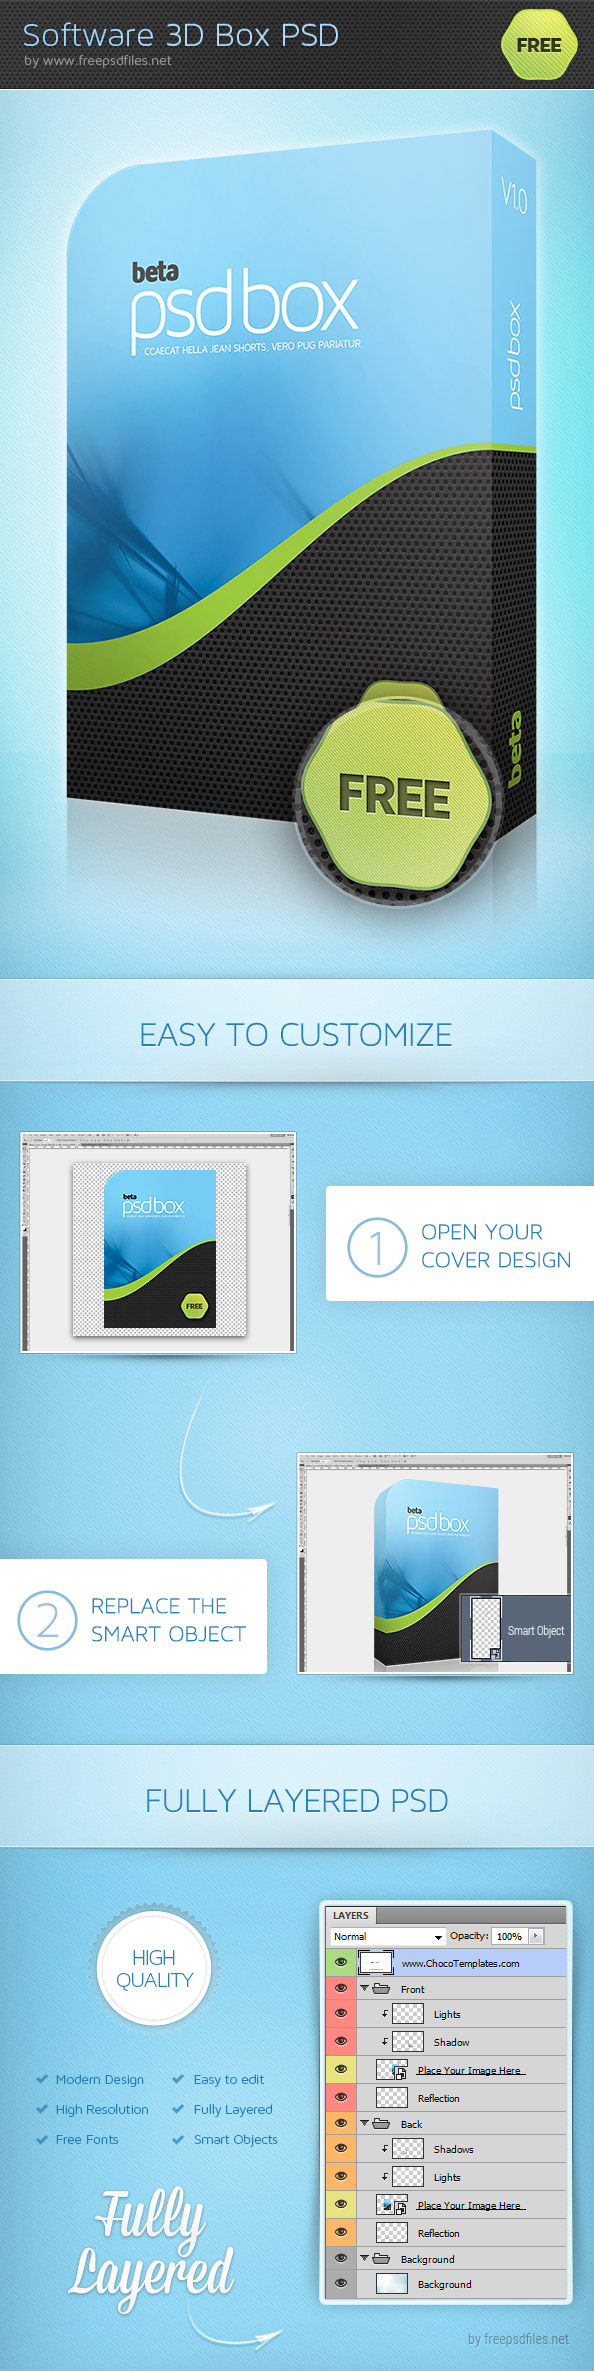 3D Software Box PSD Photoshop